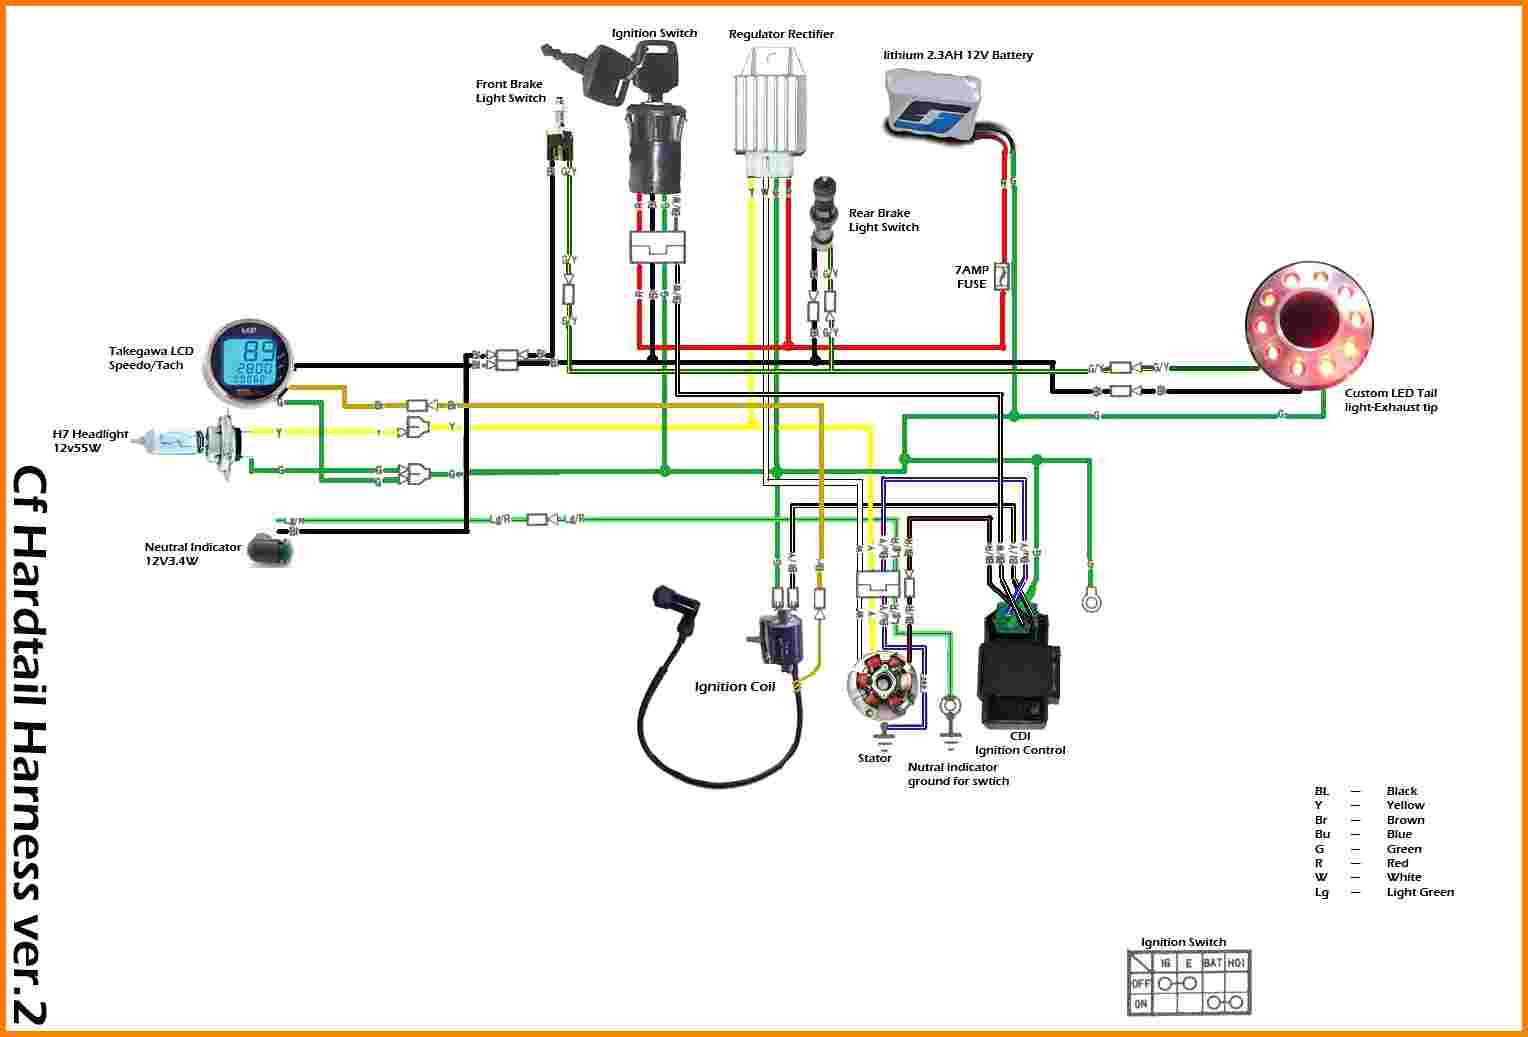 110Cc Wiring Harness | Wiring Diagram - 110Cc Atv Wiring Diagram